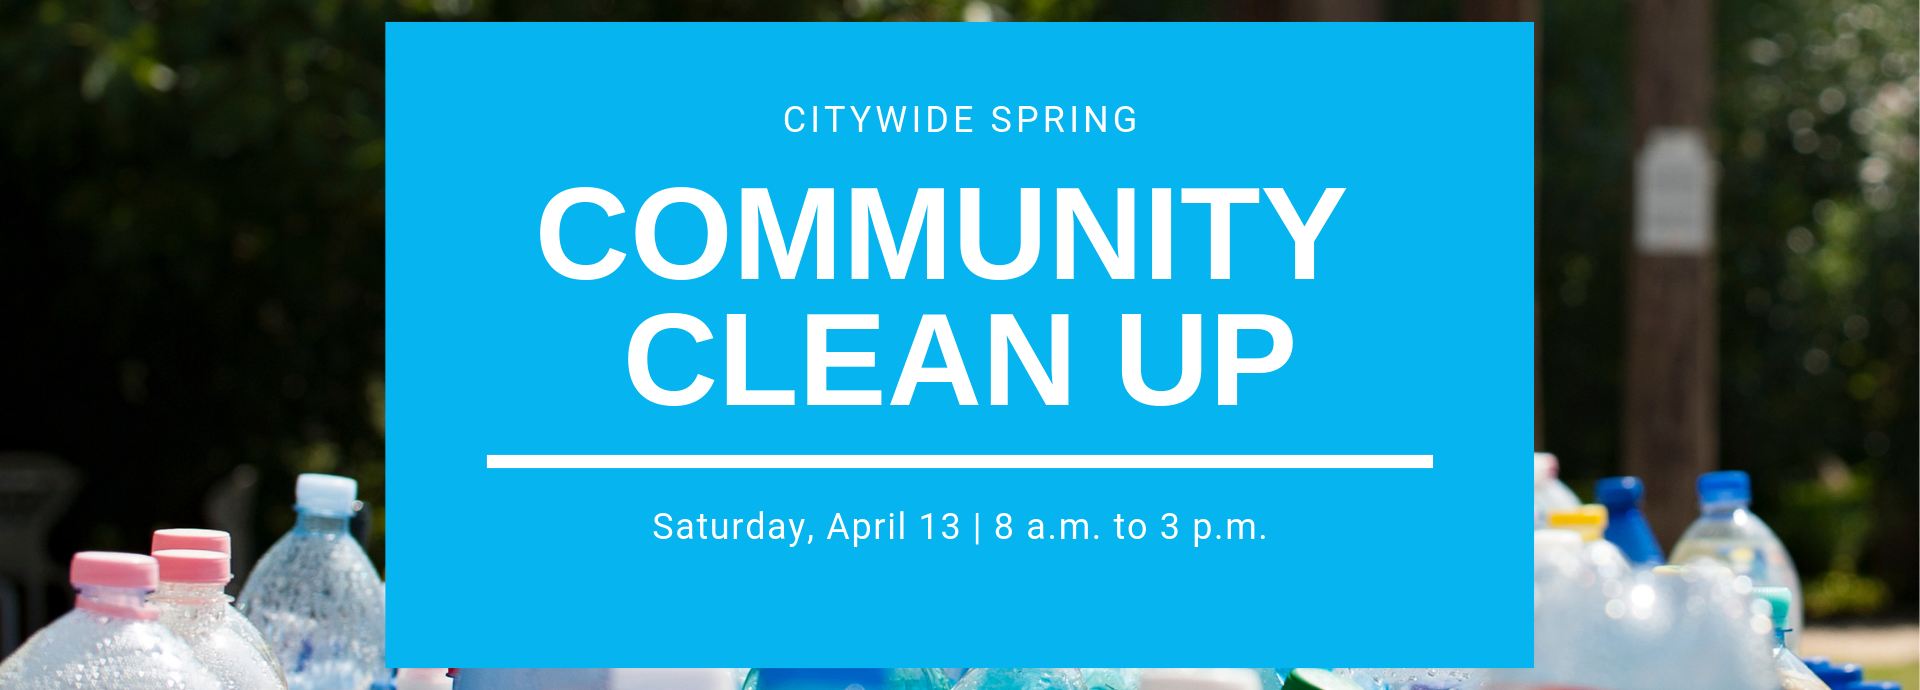 CITYWIDE SPRING CLEAN UP banner